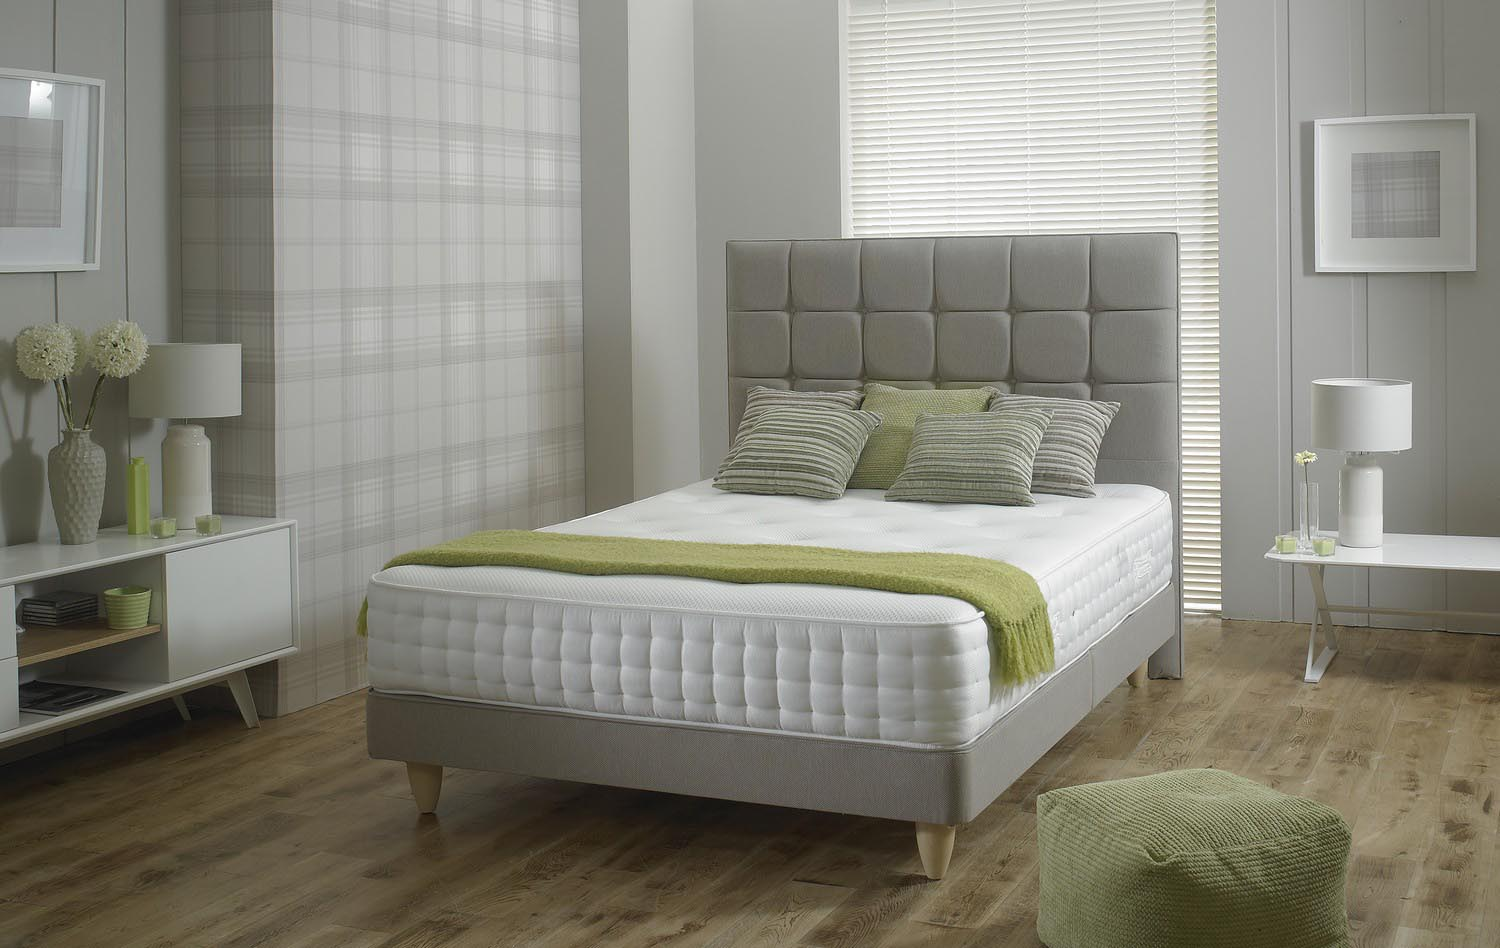 Image of Relyon bed for buying guides.